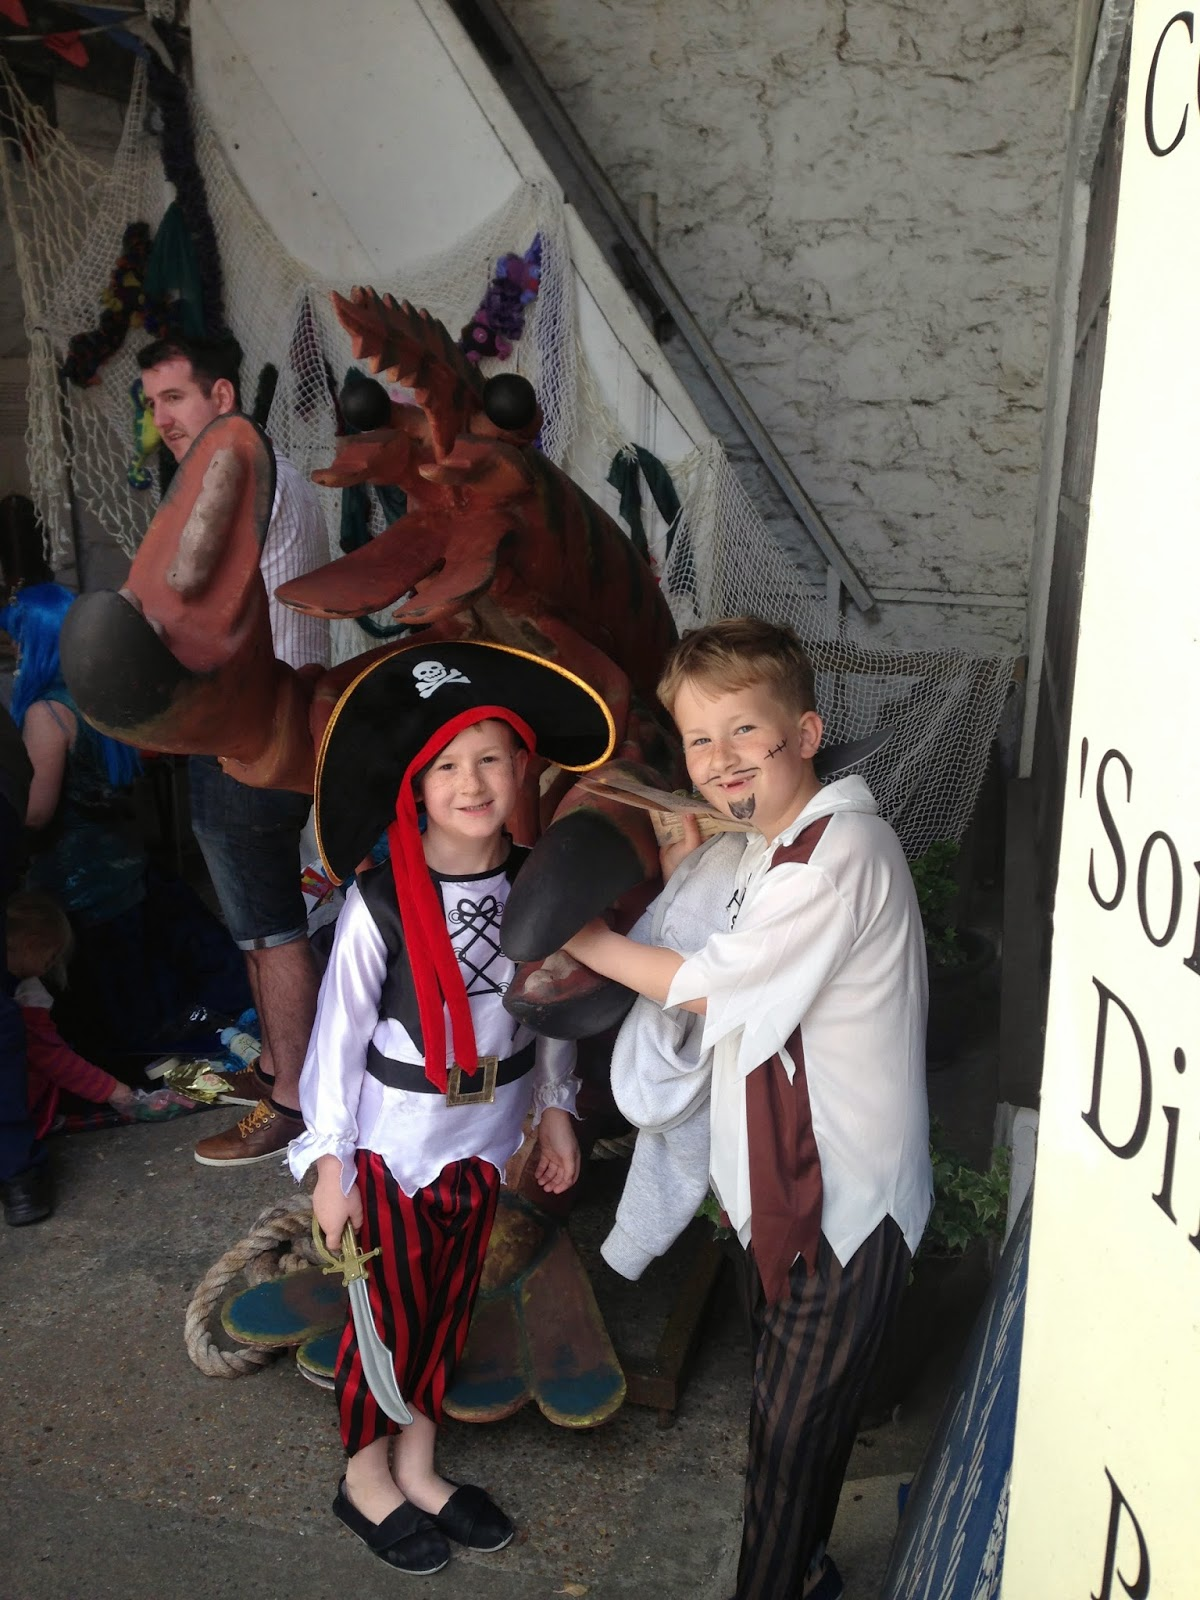 Philip the prawn, prawn, squid, antique, shop, plymouth, fun, pirate, weekend, day,